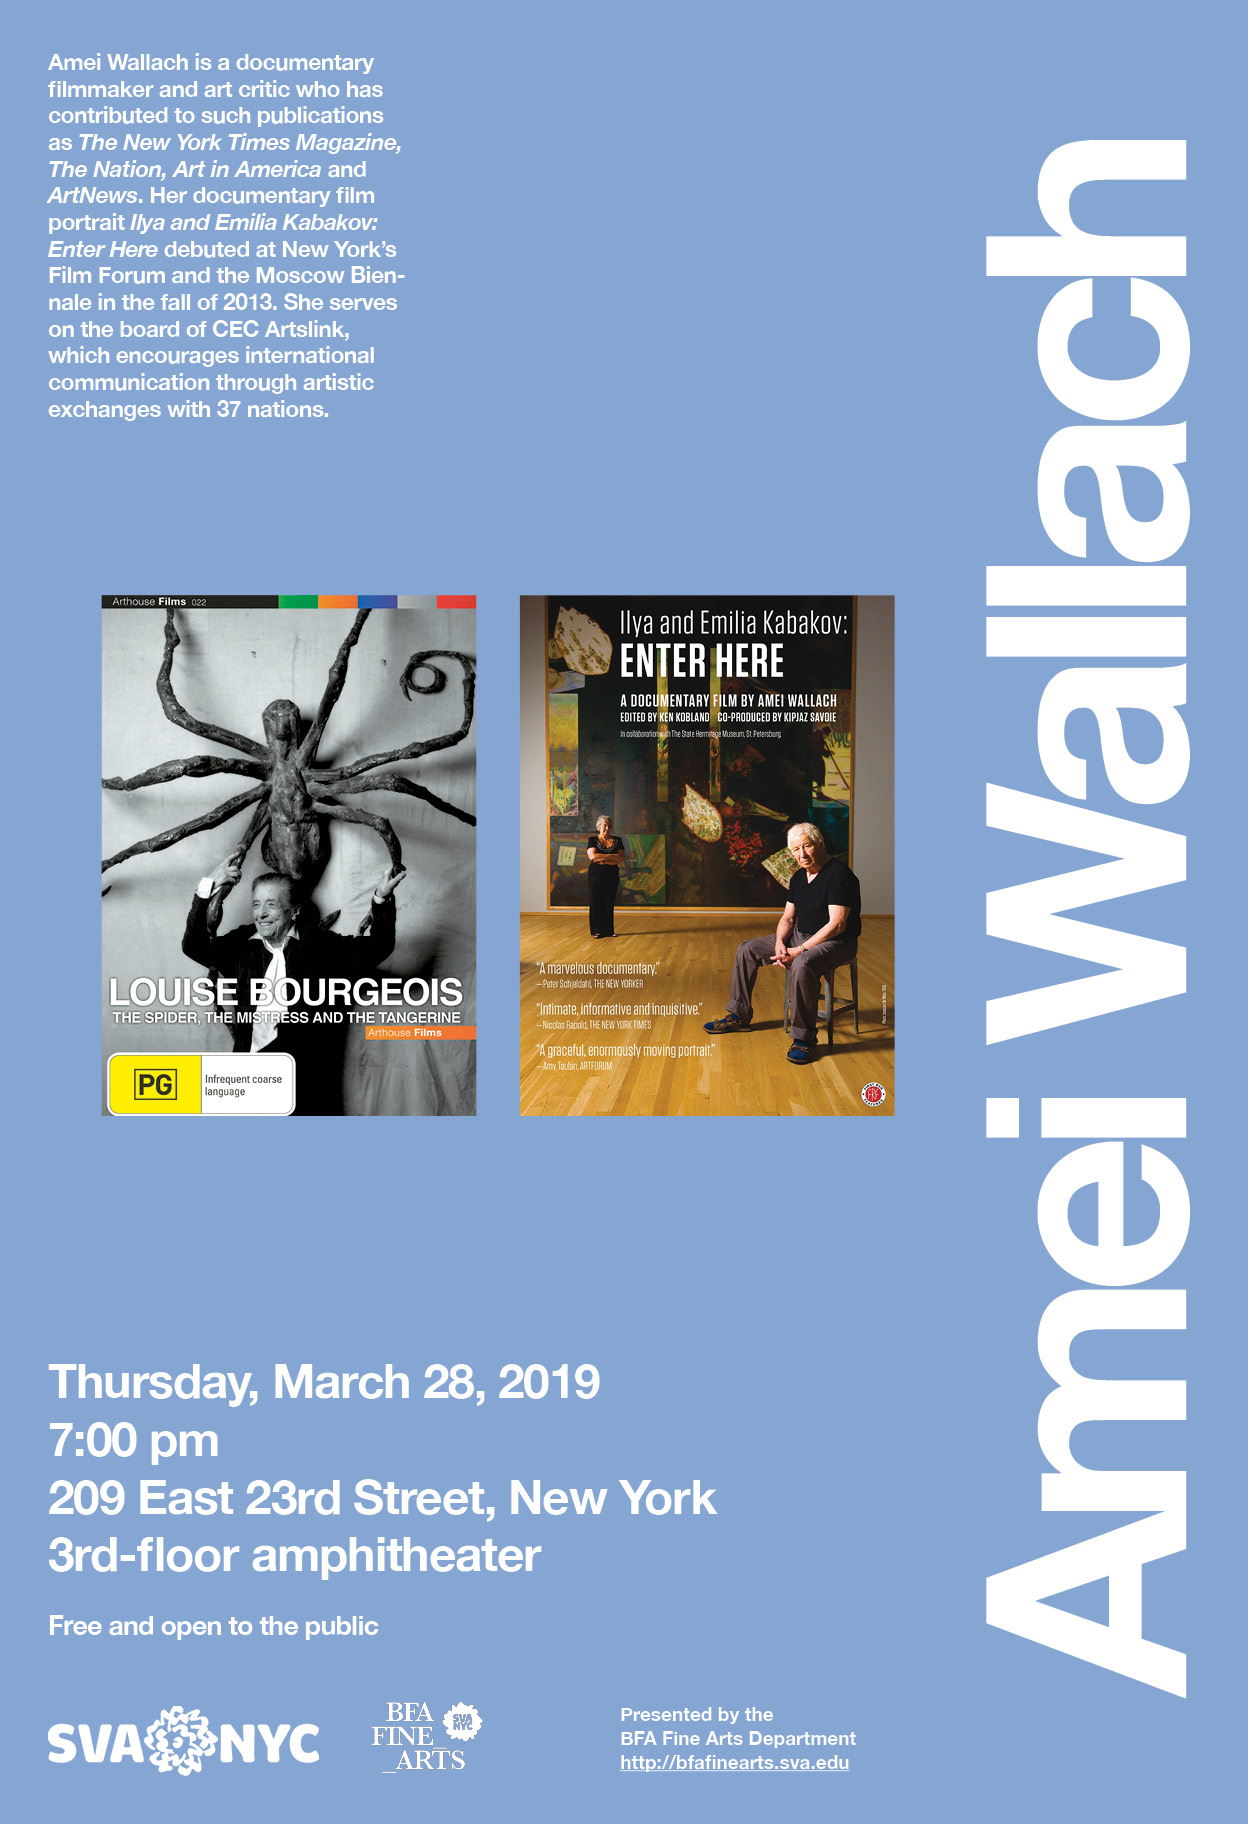 Poster for Lecture by Amei Wallach - SVA BFA Fine Arts